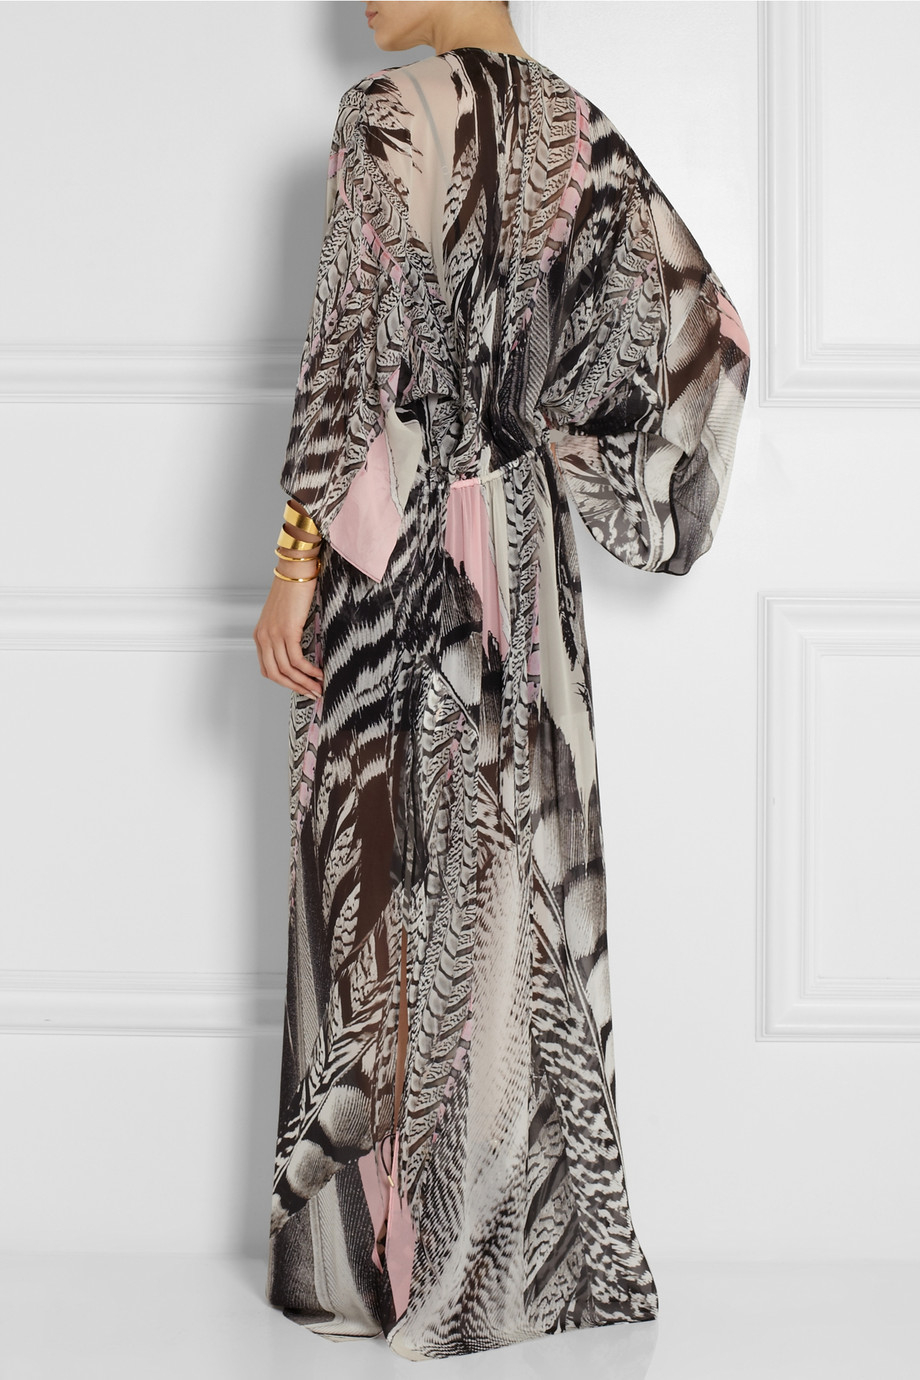 Lyst - Roberto Cavalli Printed Silk-Georgette Maxi Dress in Black 636f8c656